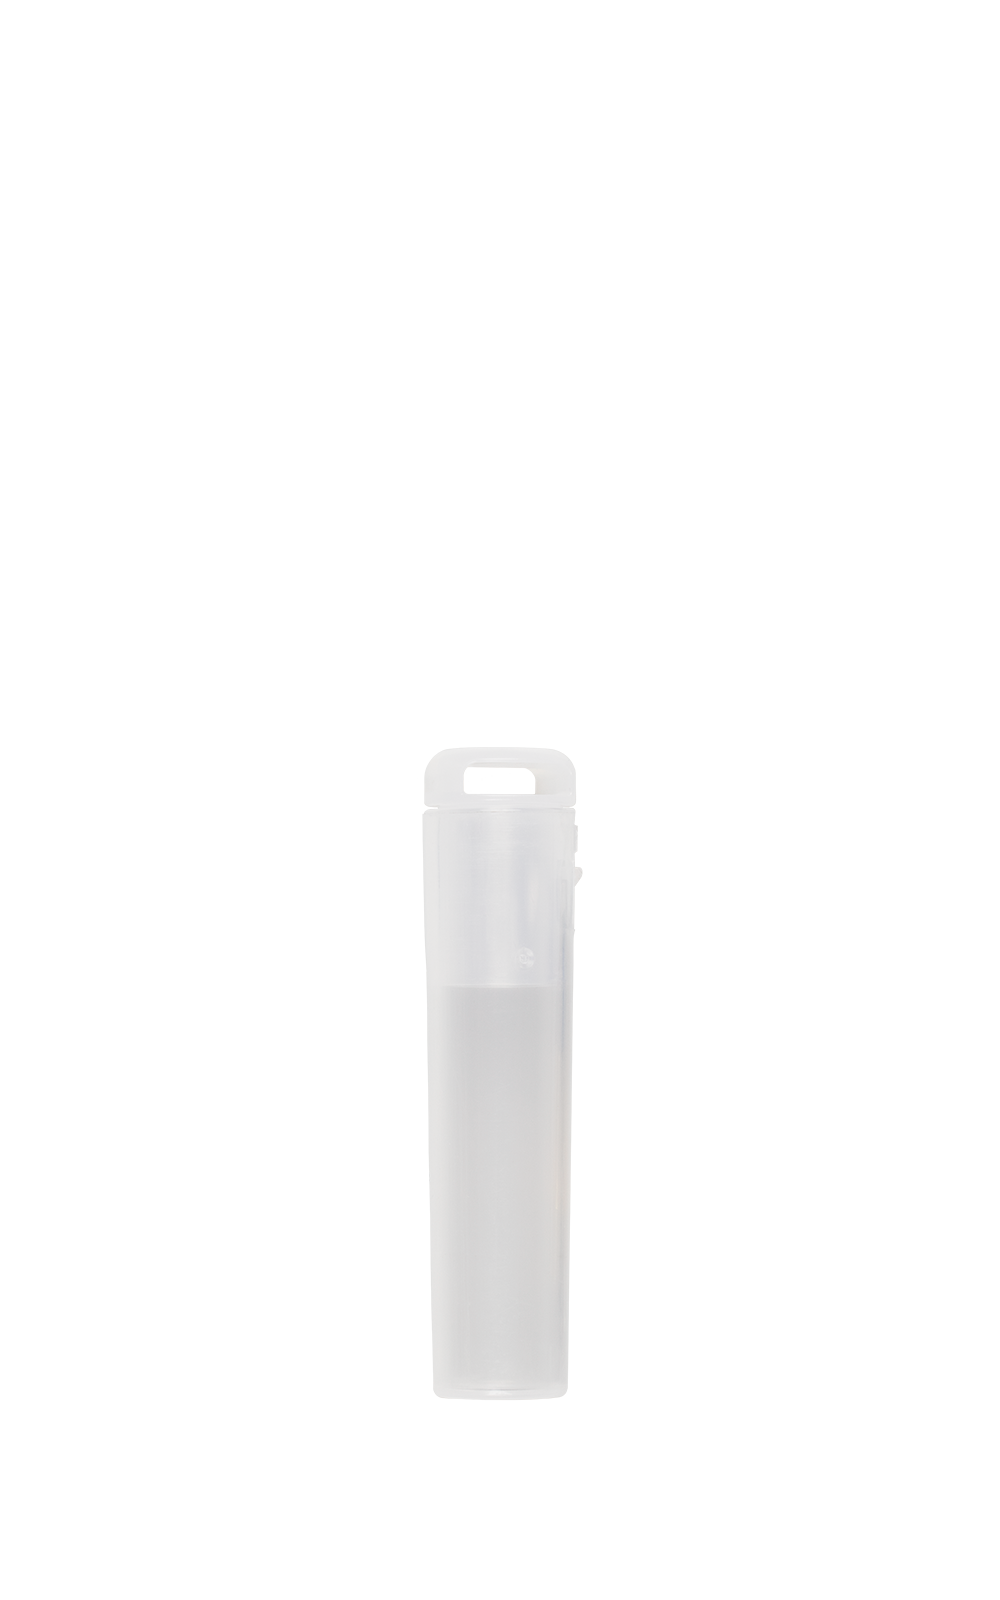 crpak-tube-70-Side-Empty.png